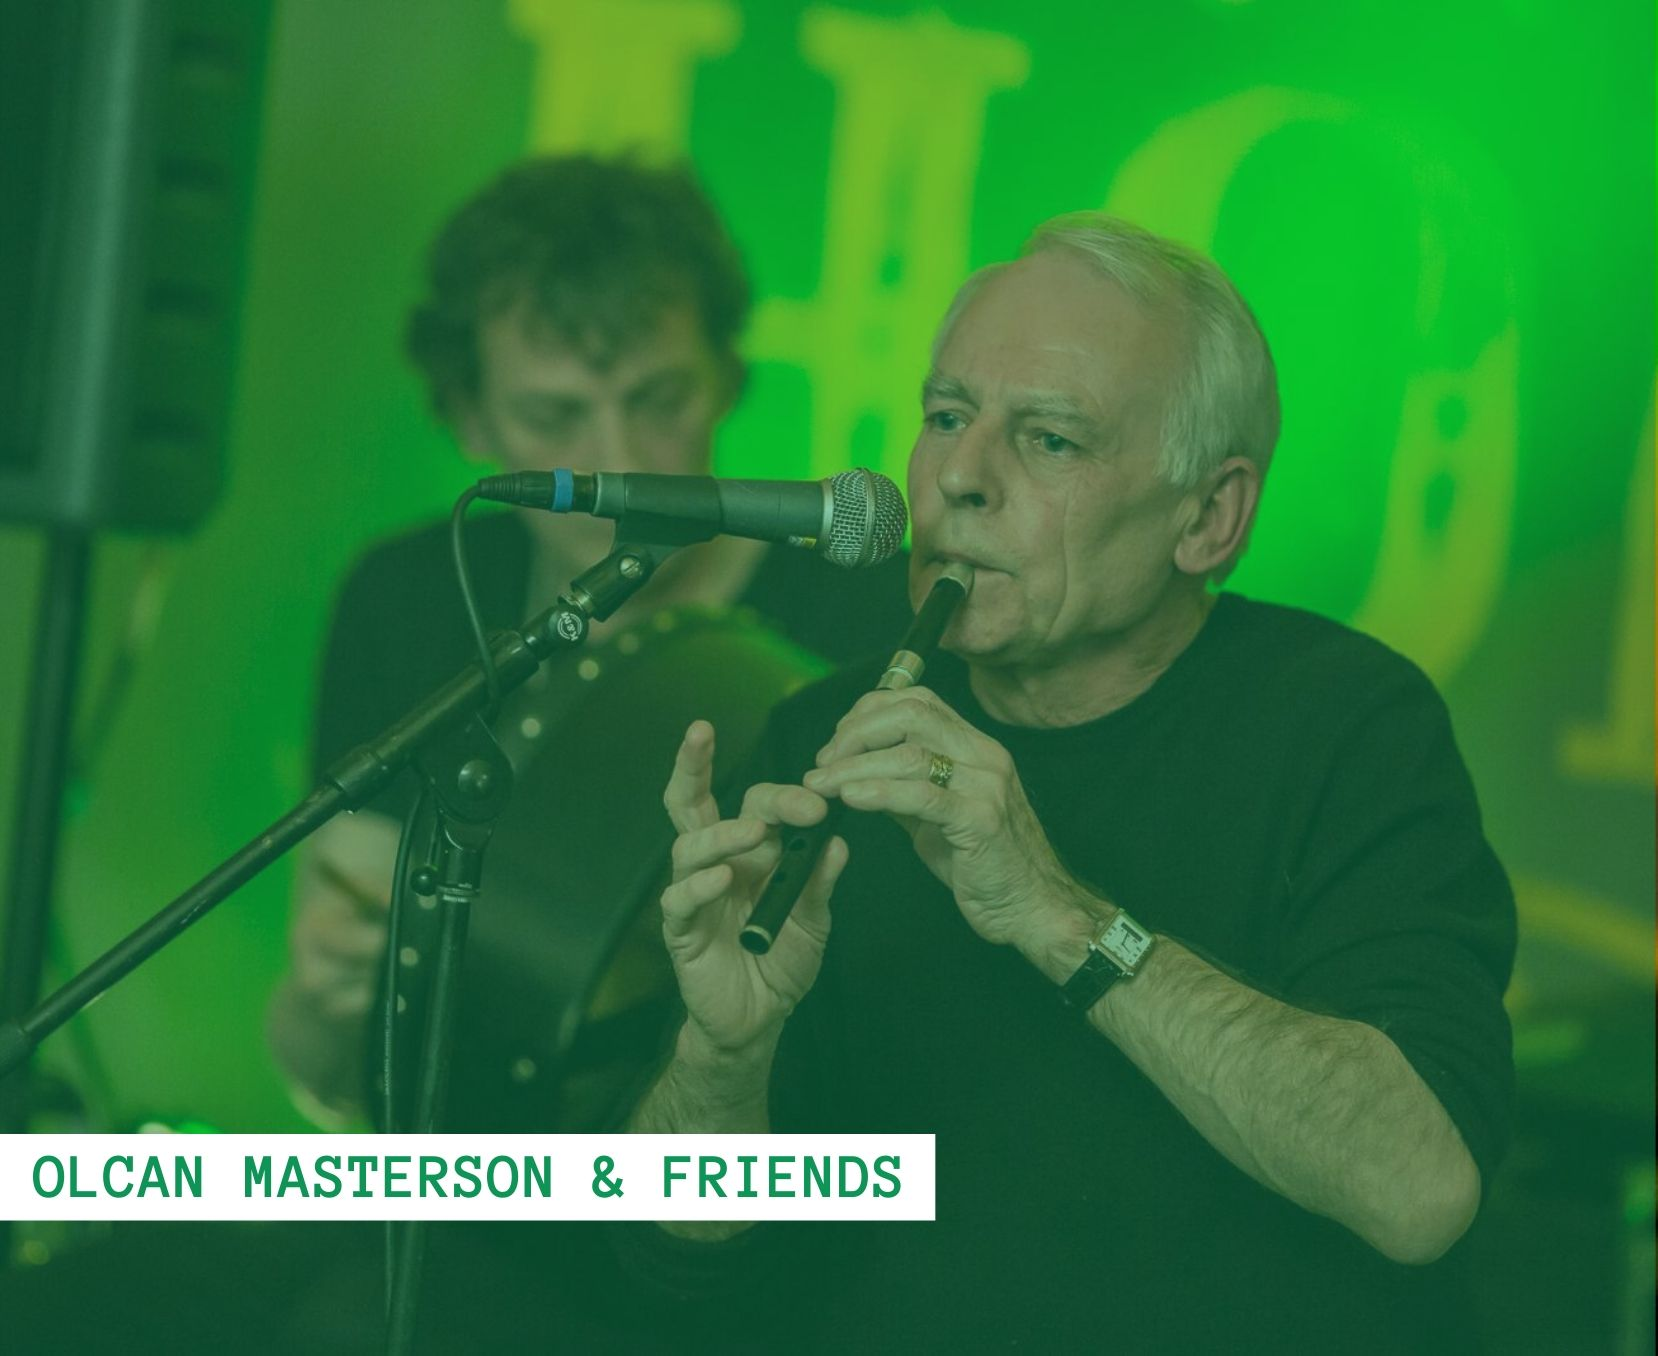 olcan masterson and friends st patricks day the hague 2020